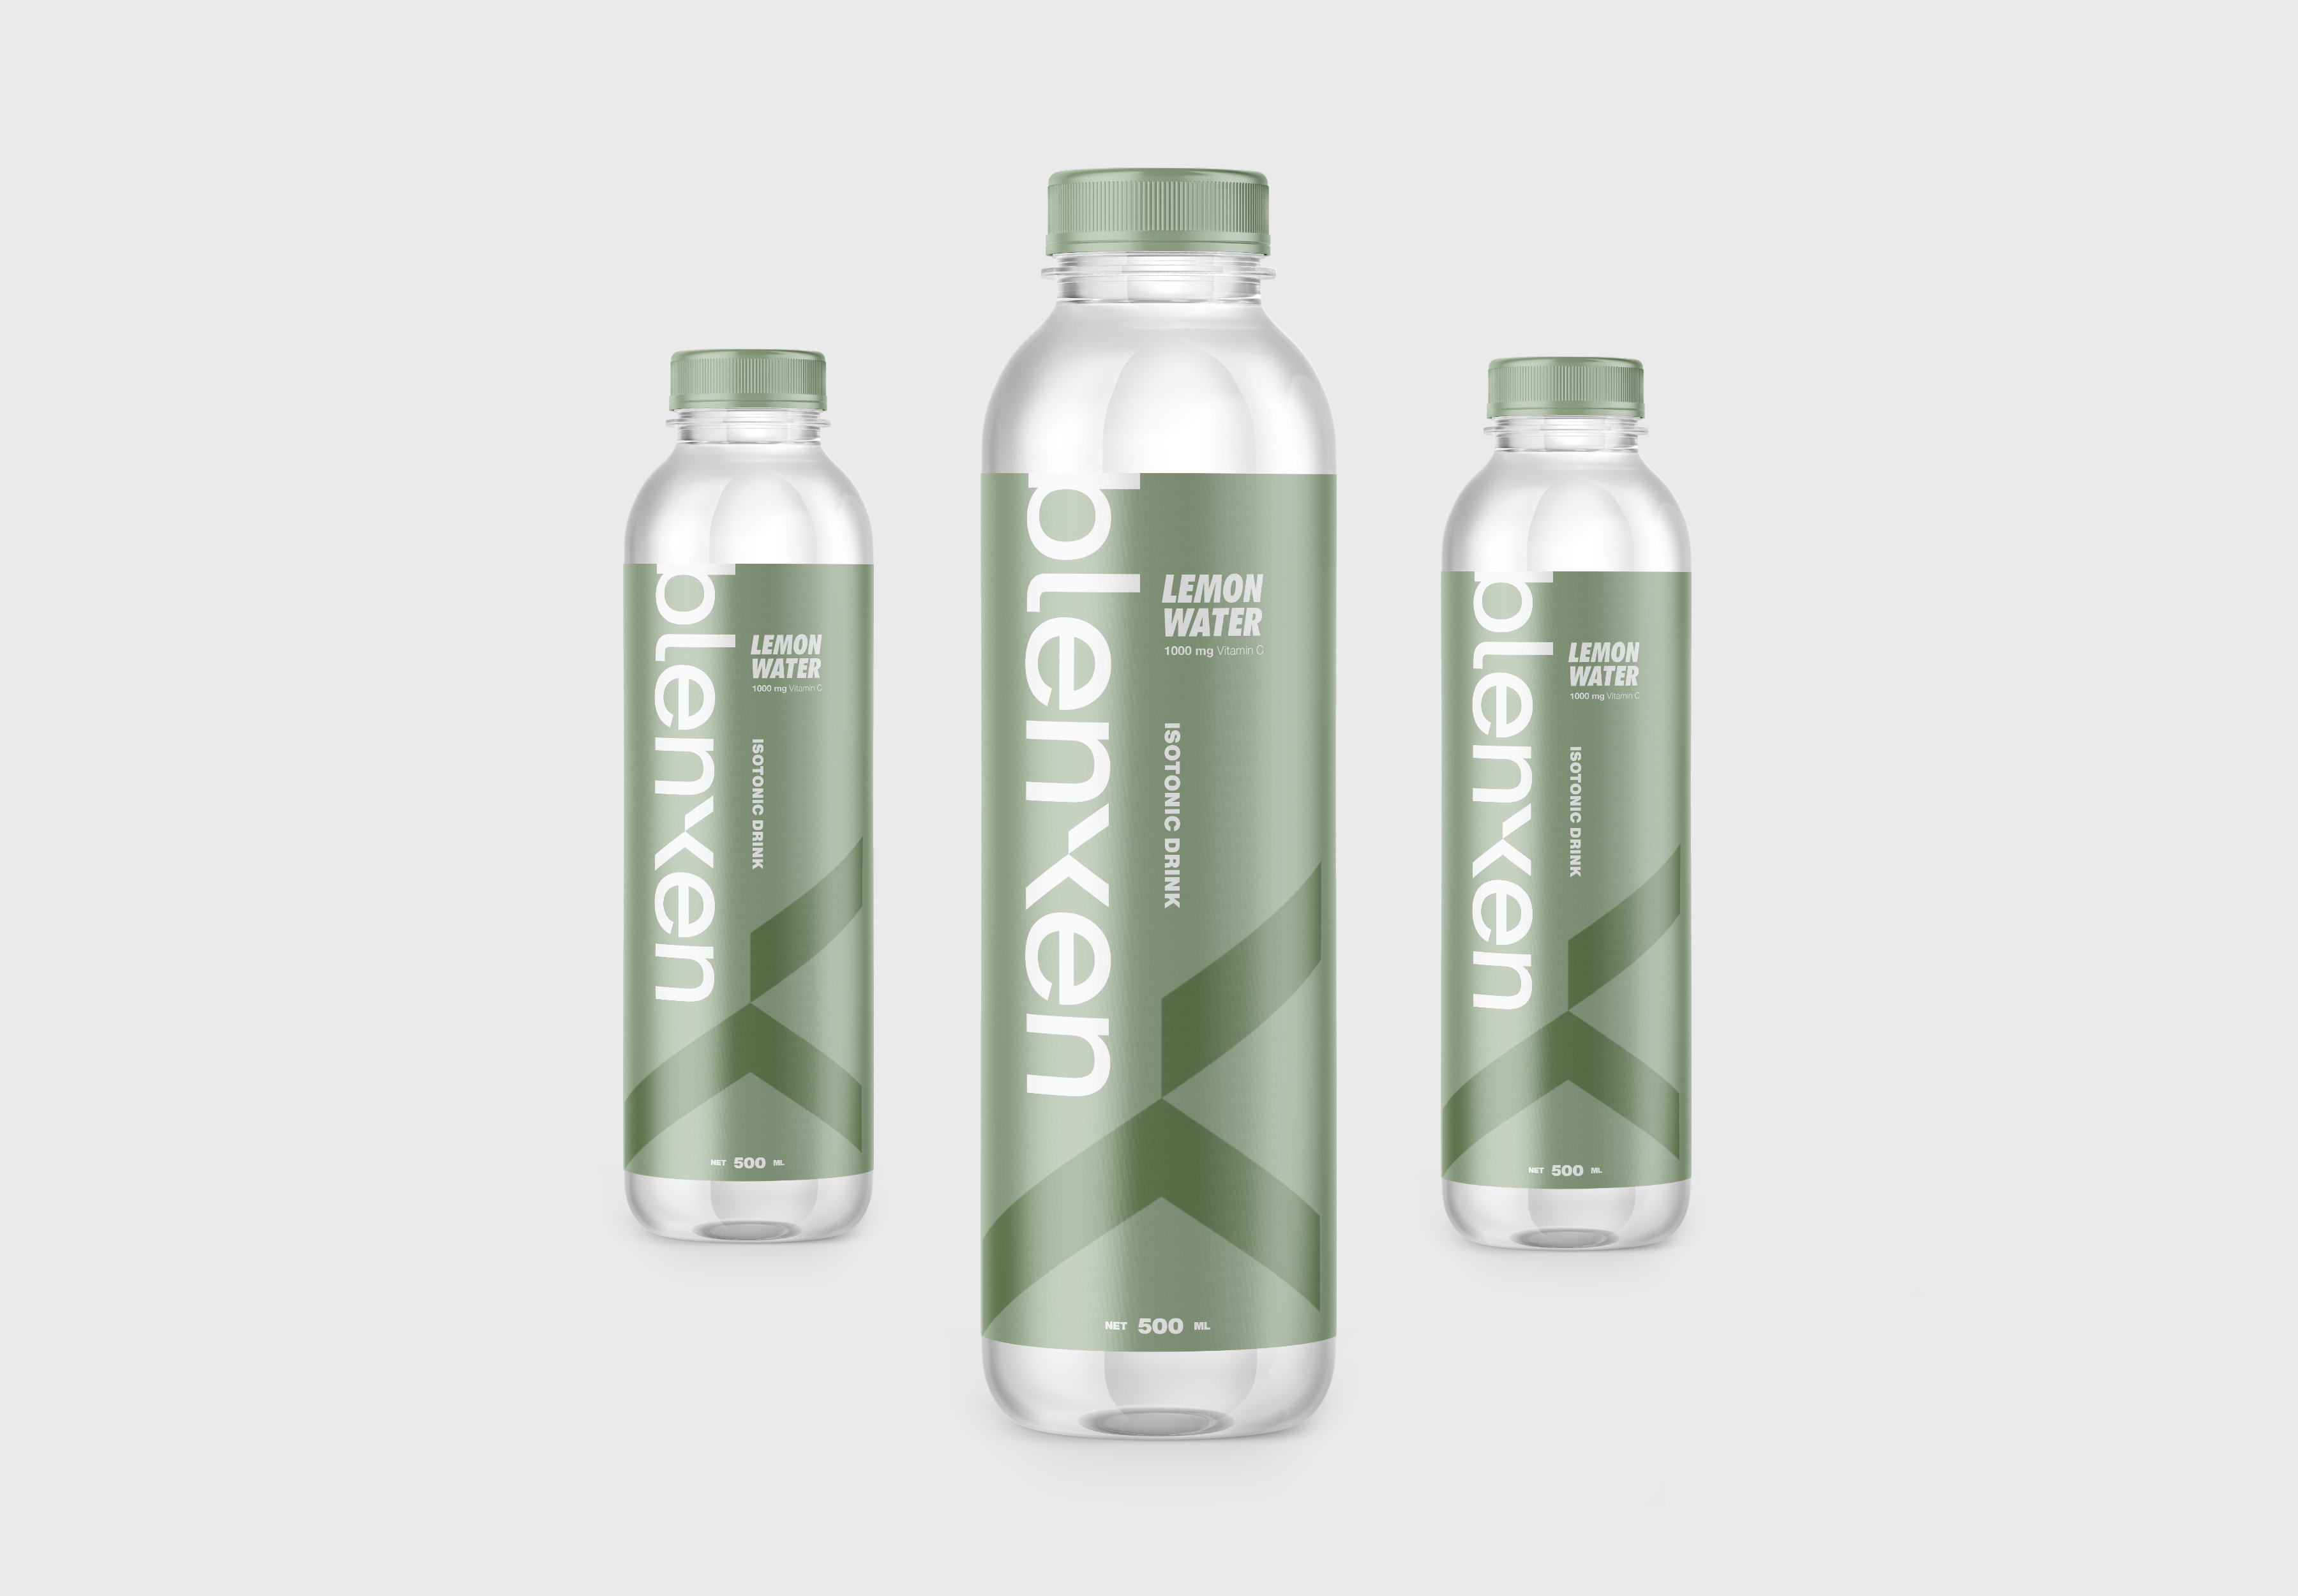 Widarto Impact Creating Design for Blenxen Isotonic Drink Bottle and Can Packaging